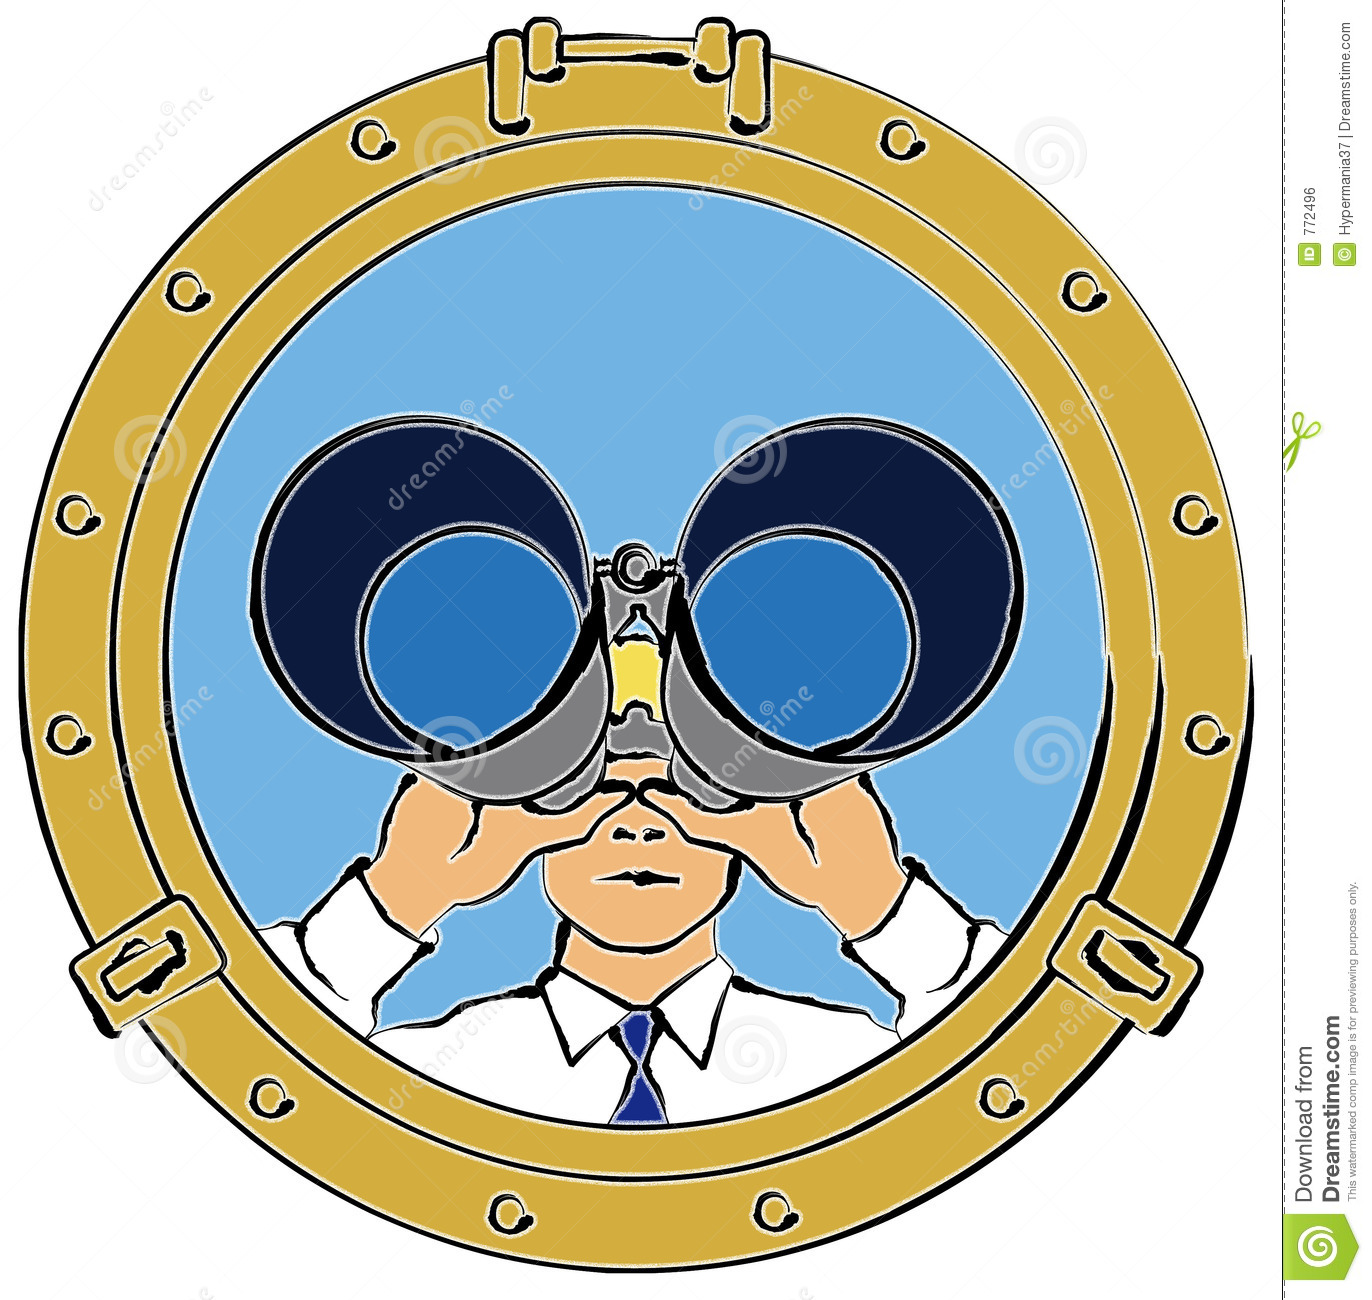 Man Looking Through Binoculars Royalty Free Stock Image   Image